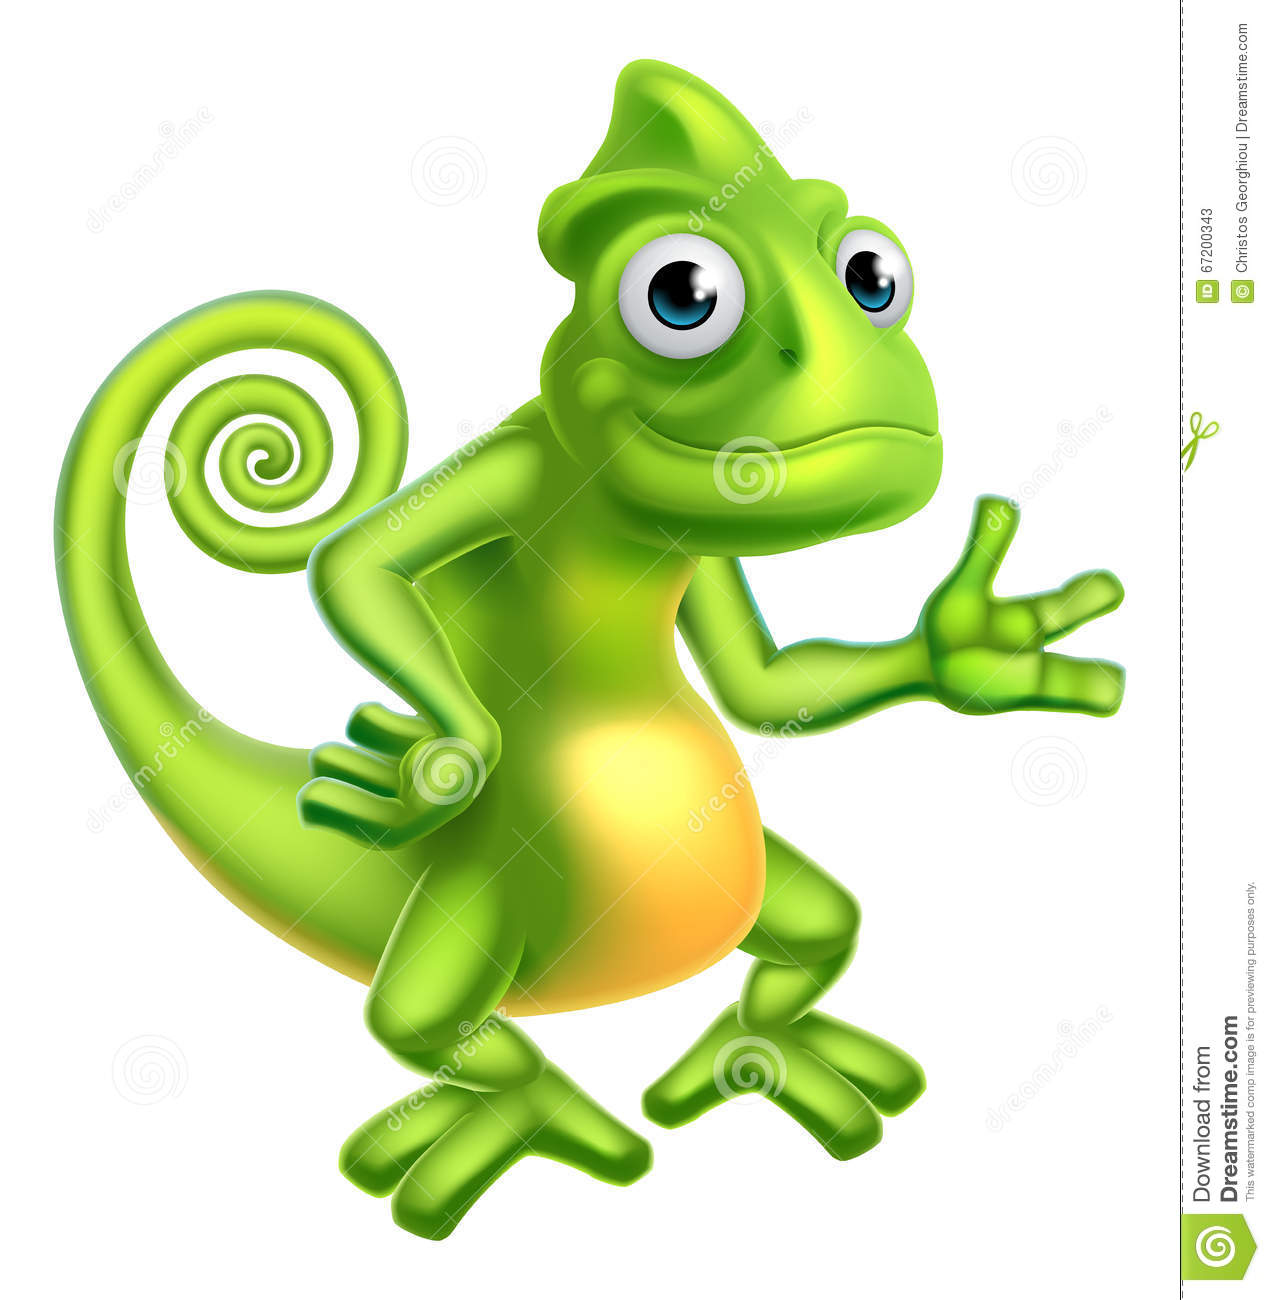 Cartoon Chameleon Stock Vector - Image: 67200343